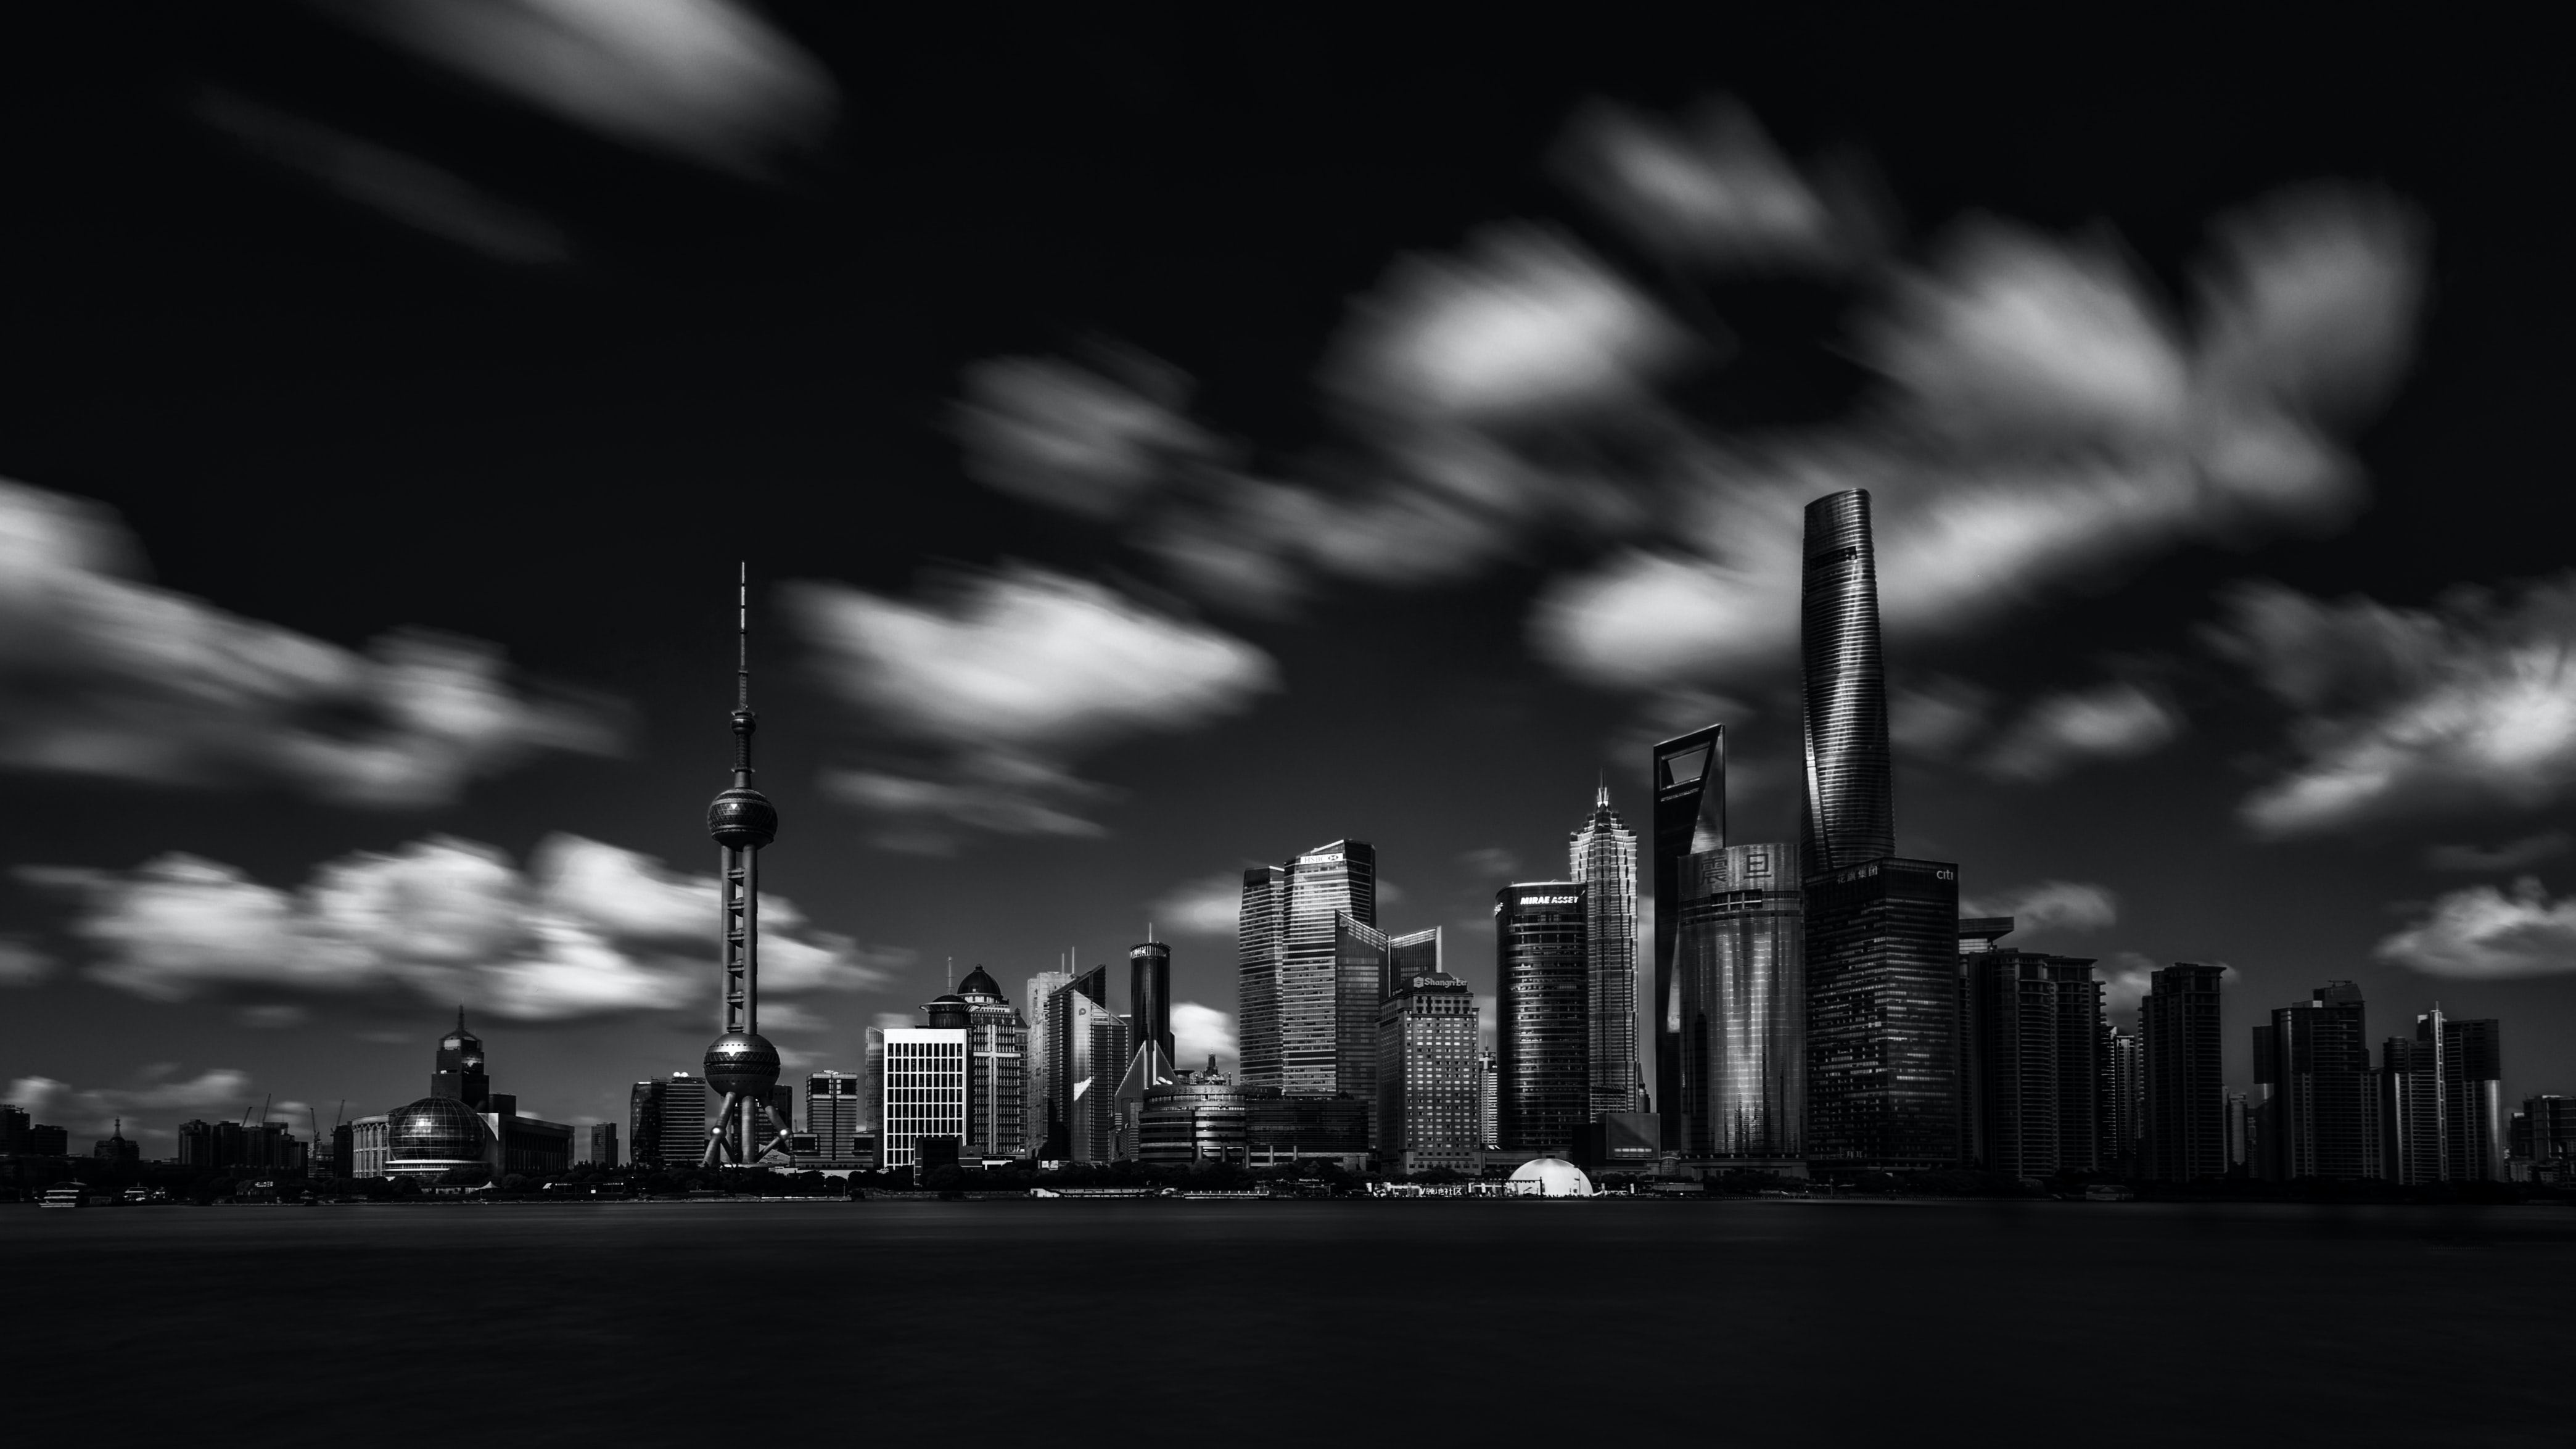 gray scale photography Oriental Pearl Tower and buildings